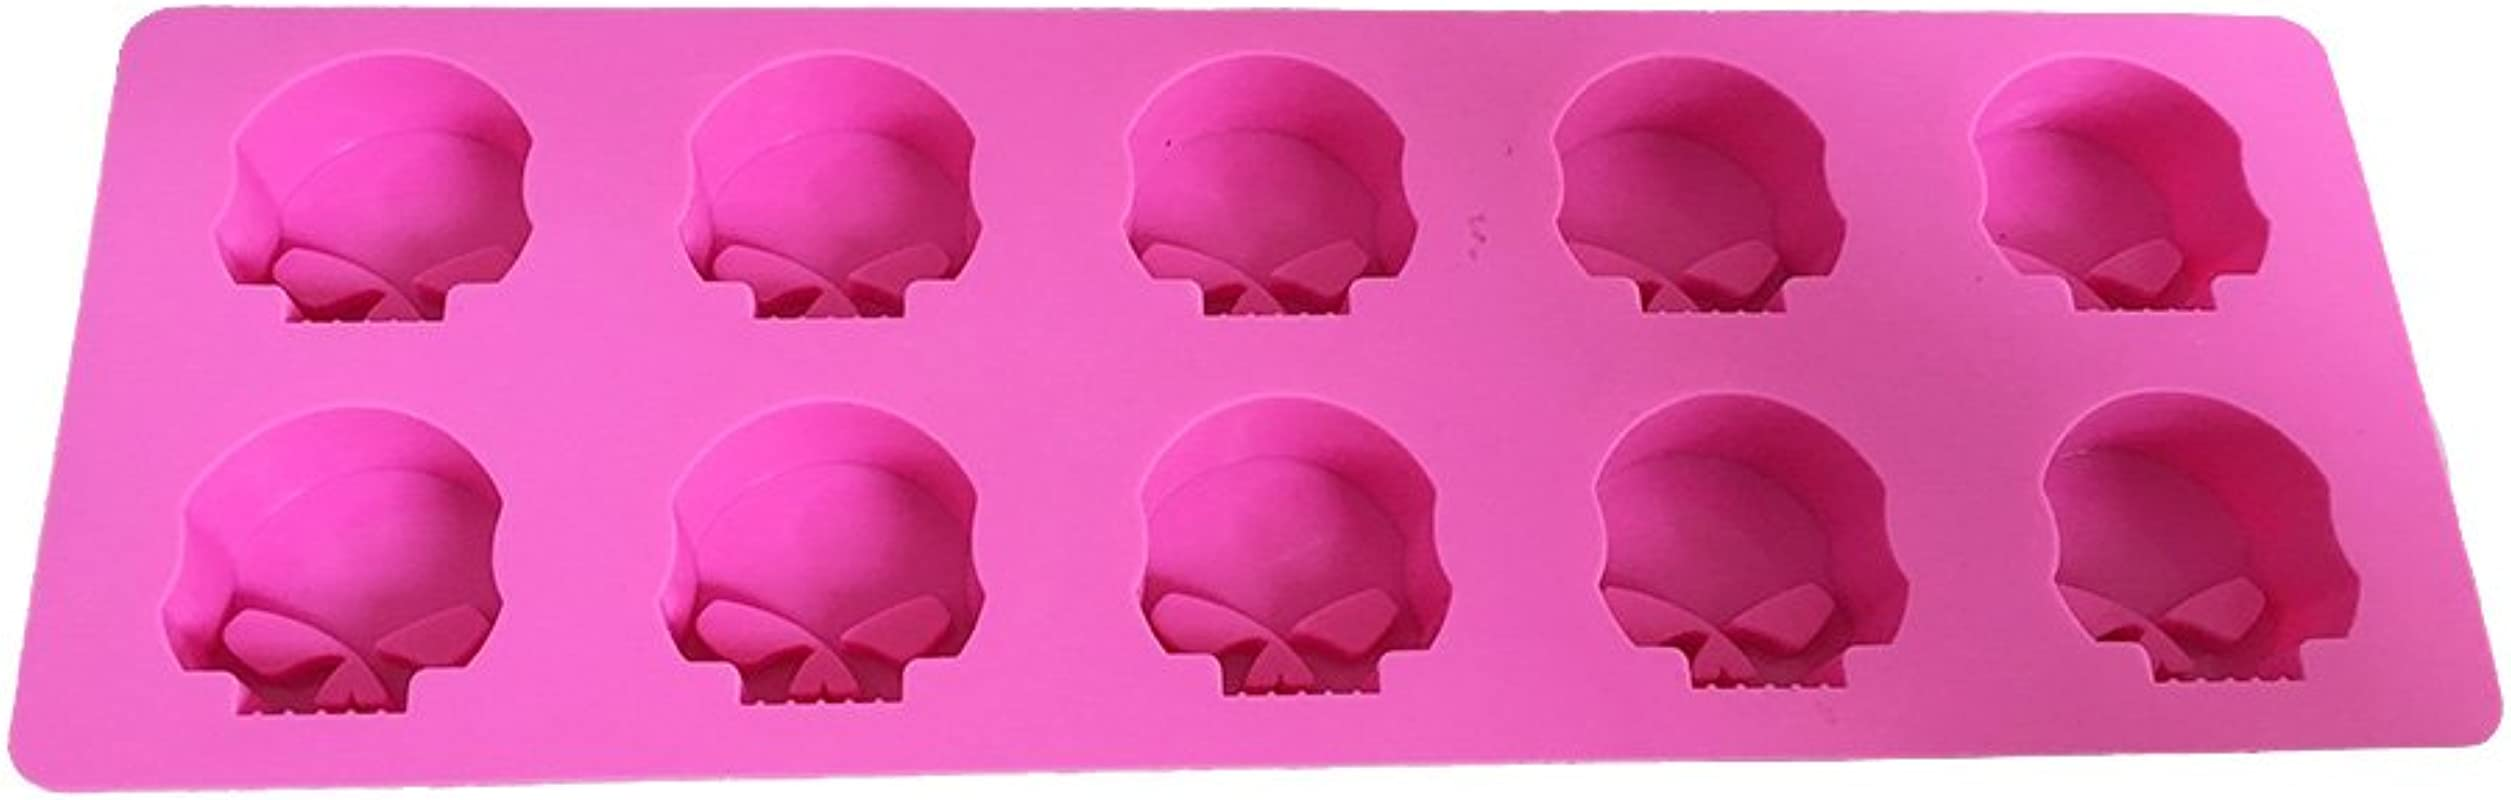 X Haibei Halloween Skull Ice Cube Chocolate Candy Crayons Soap Mould Silicone Mold Party Maker Dia 1 4 Inch Height 0 8 Inch